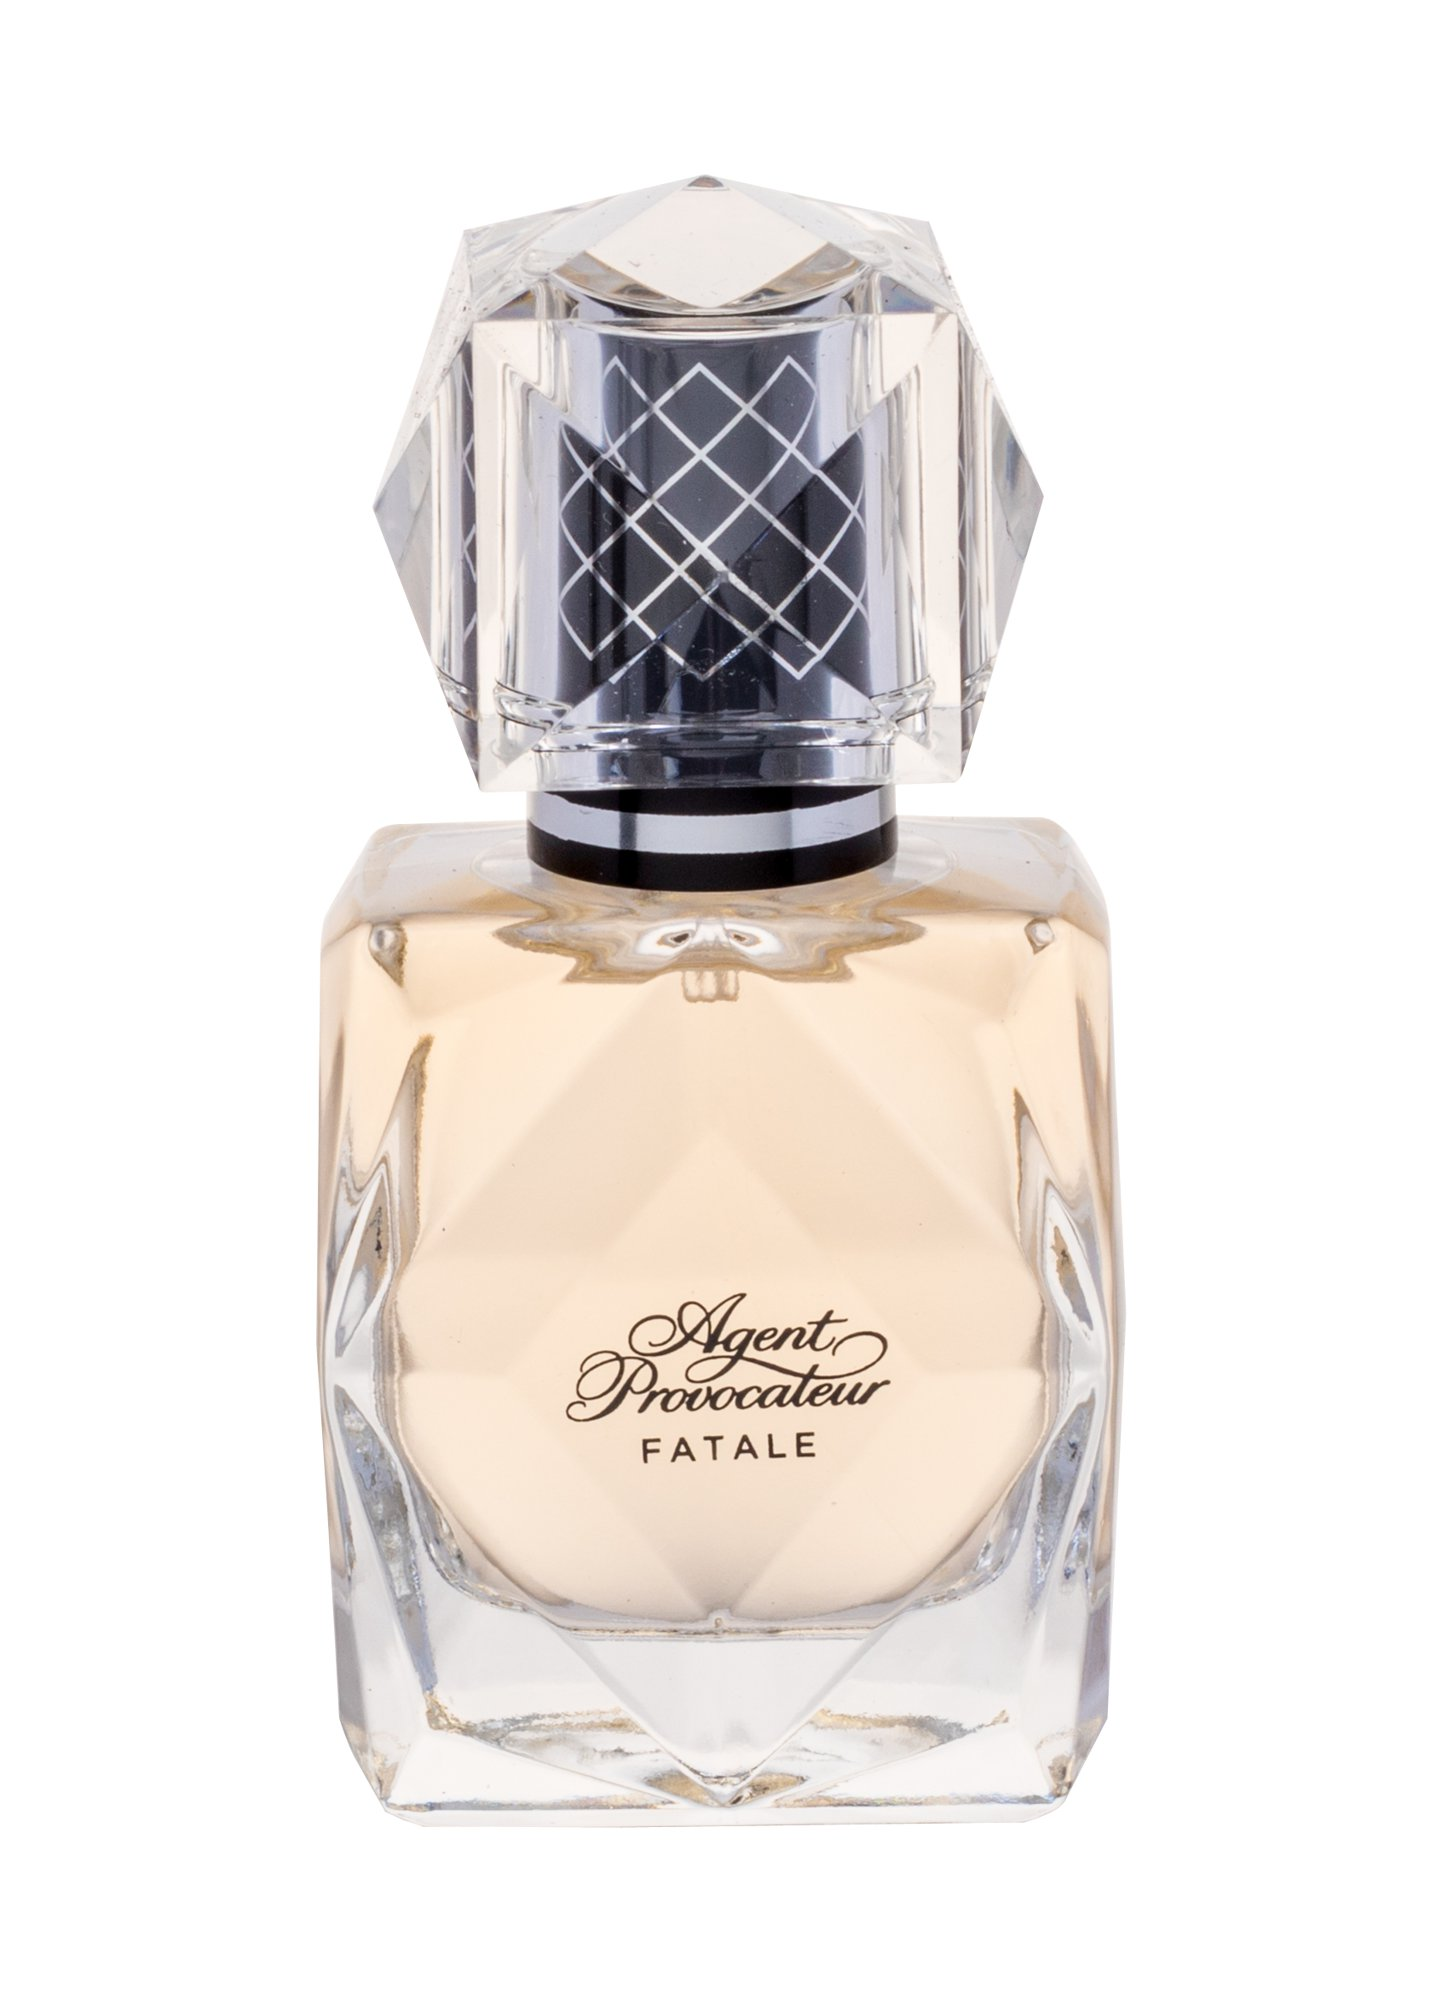 Agent Provocateur Fatale, edp 30ml